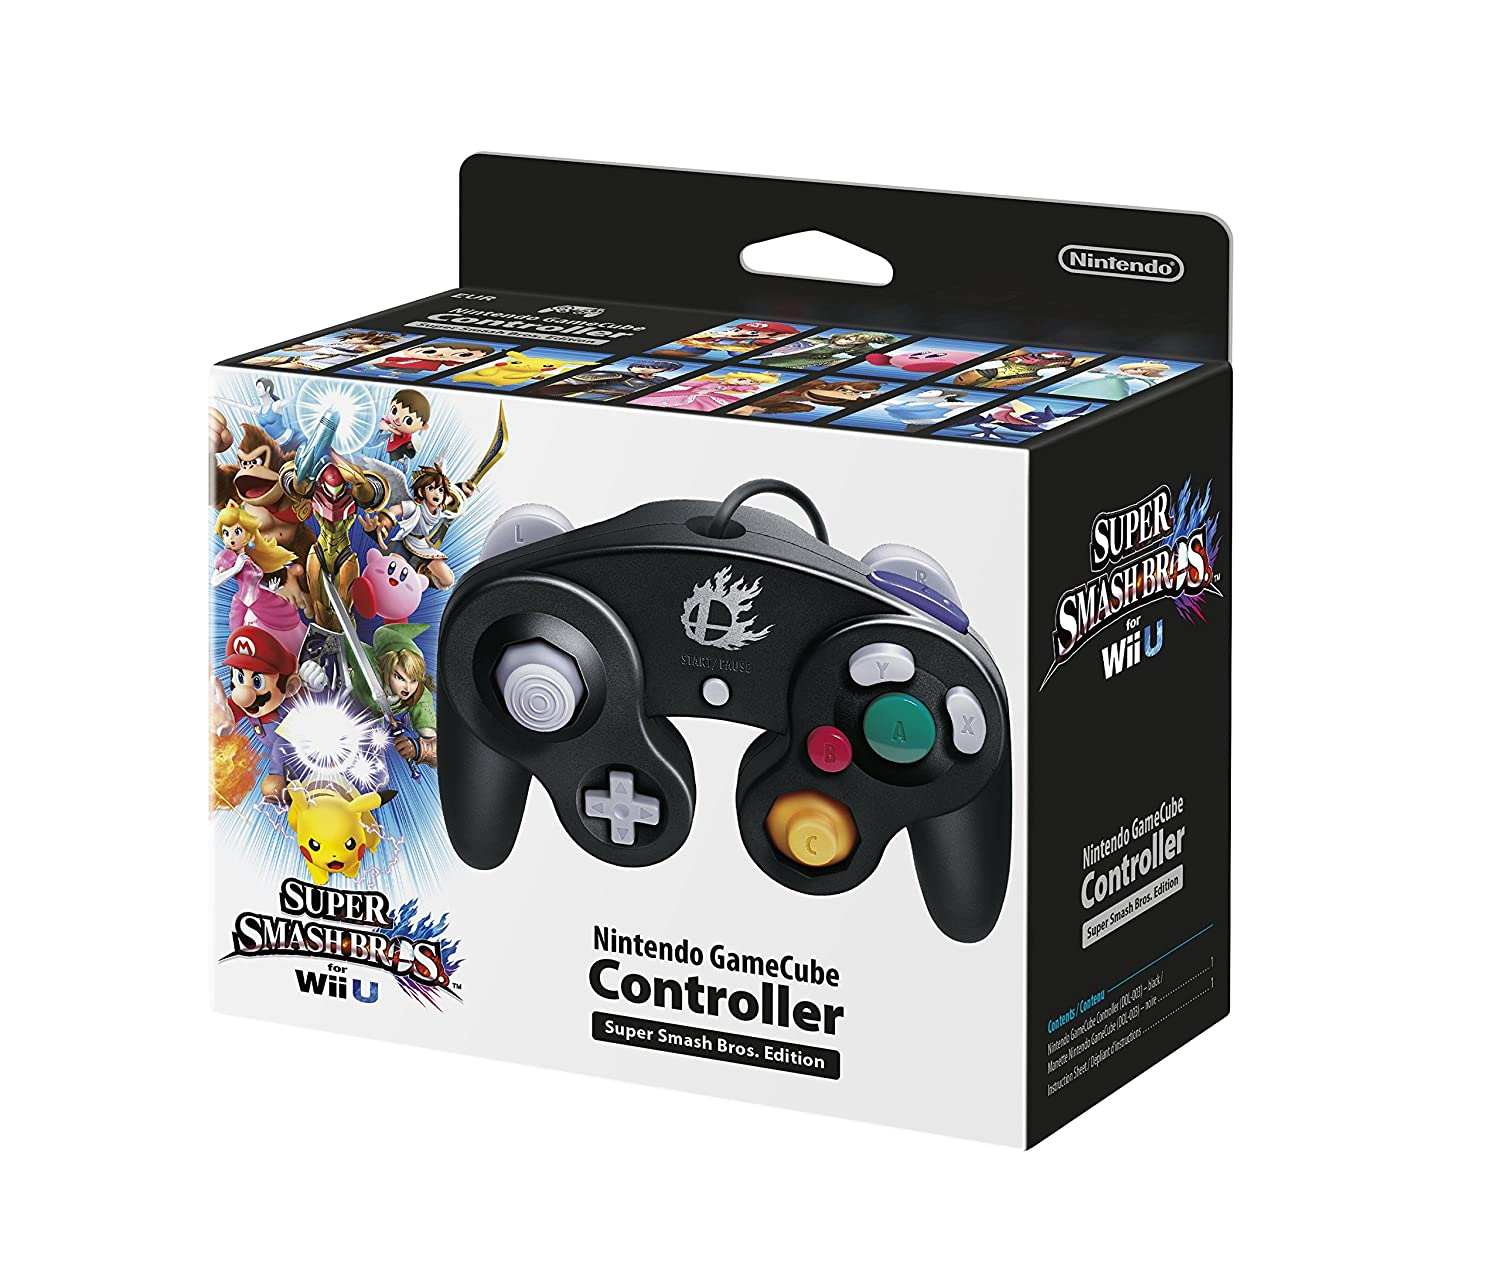 Pack Shots For Gamecube Controller Super Smash Bros